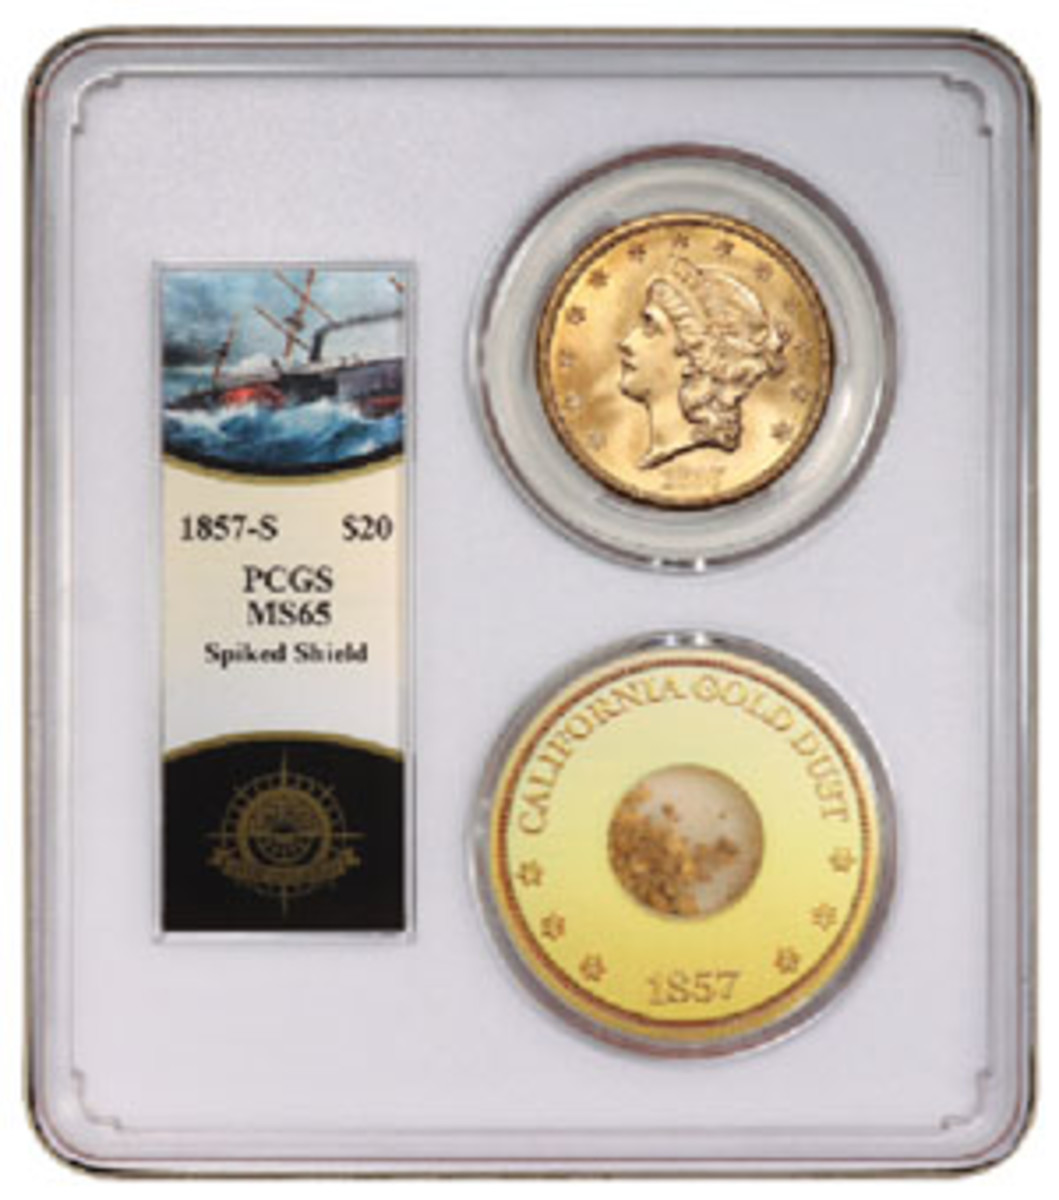 Slabbed with a pinch of gold, this 1857-S double eagle is graded MS-65 by PCGS.